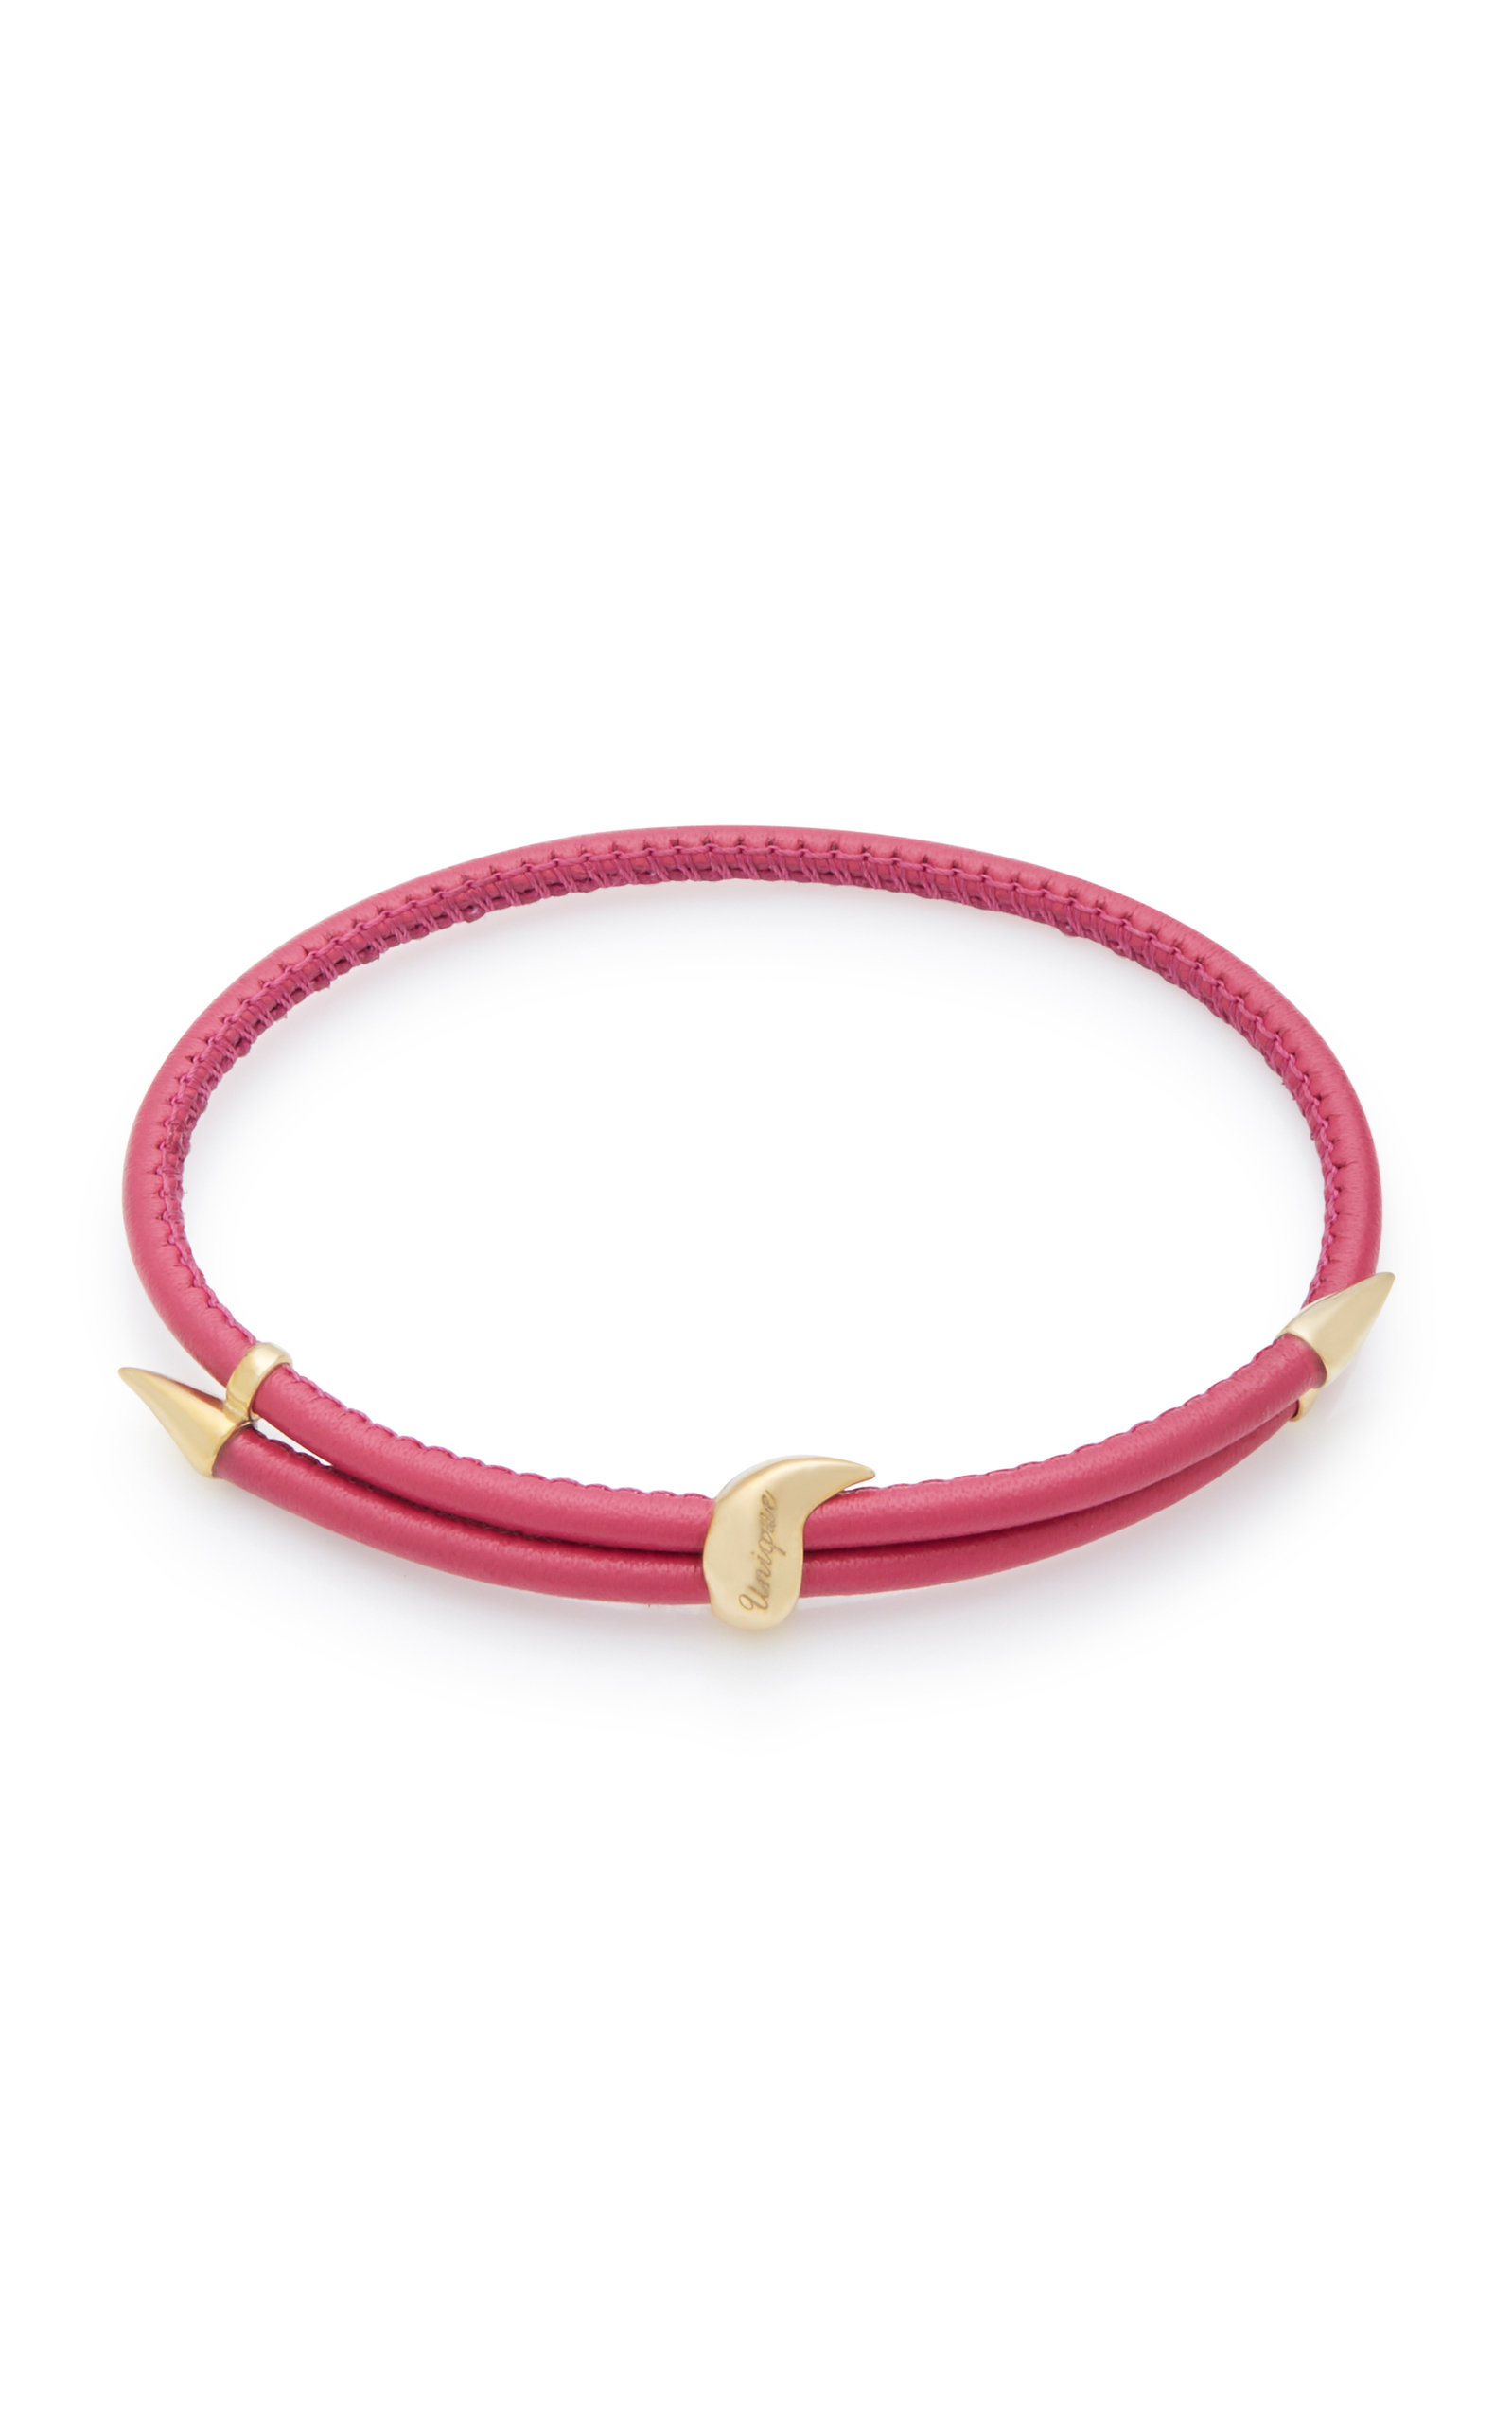 BEA BONGIASCA Heliconia Unique Adjustable 9K Gold And Leather Bracelet in Pink